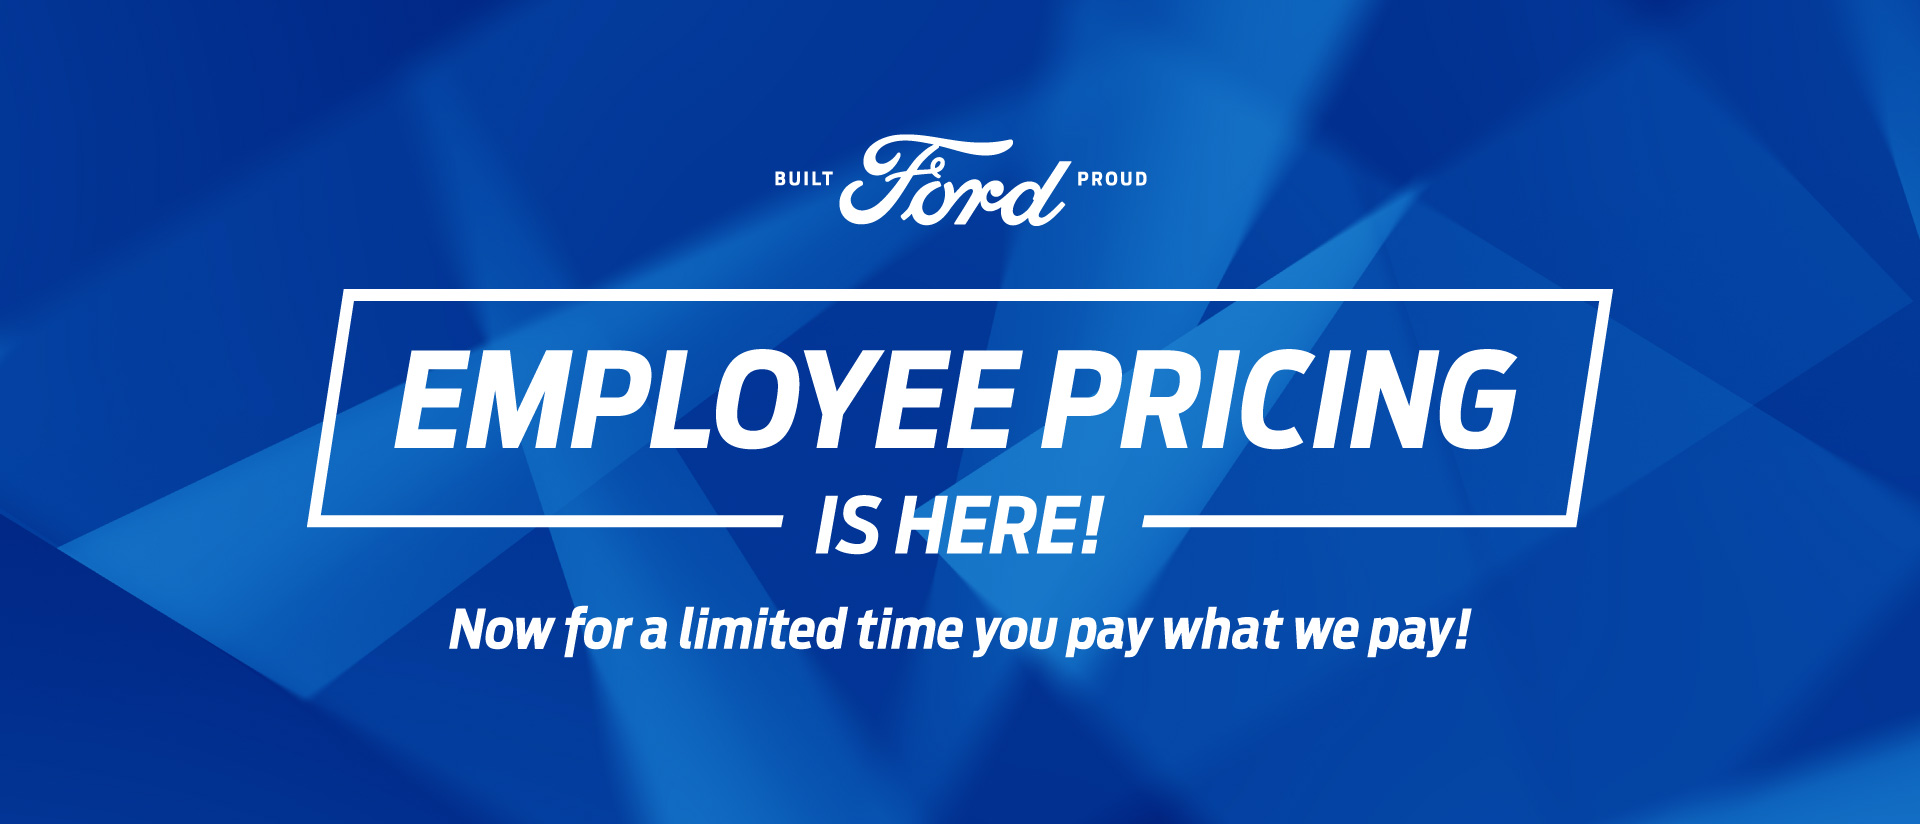 661507207 Team Ford Employee Pricing Banner Option1 21x9